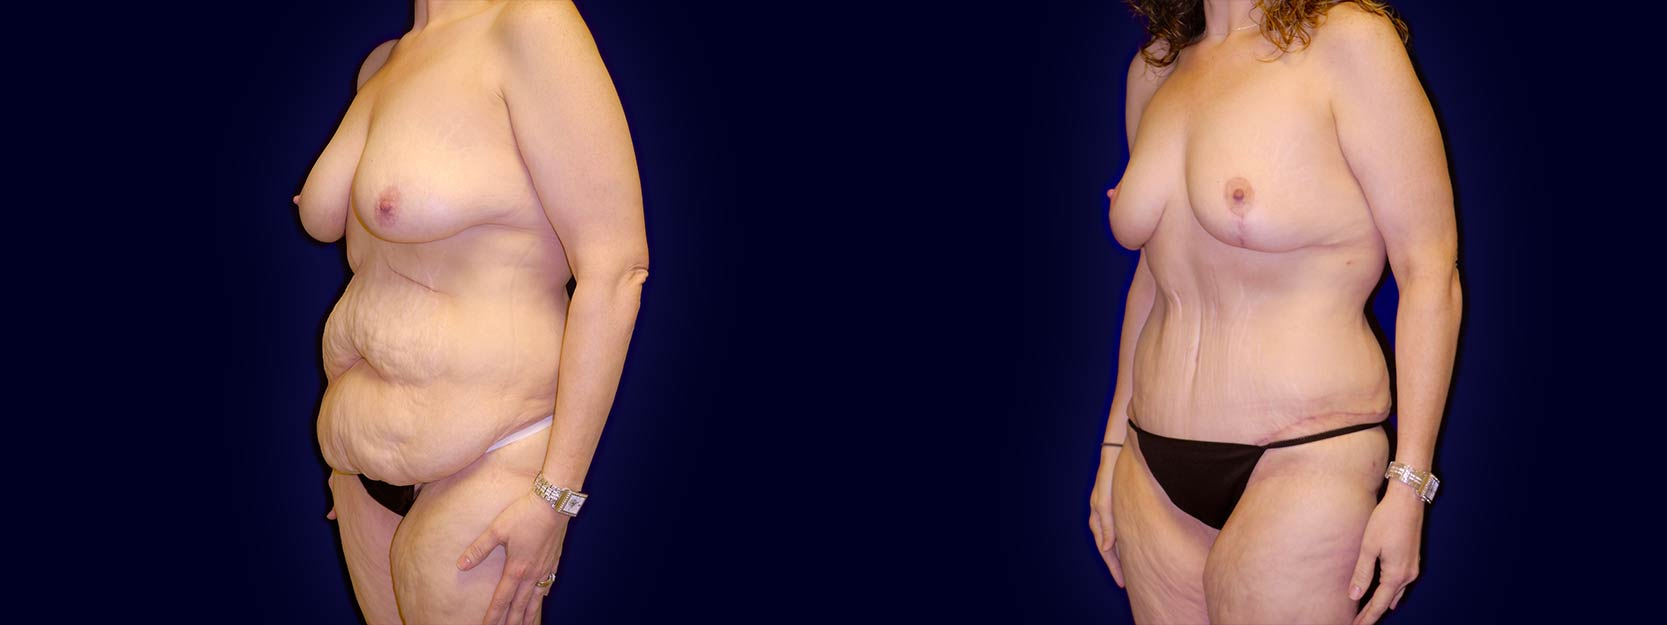 Left 3/4 View - Surgery After Weight Loss - Breast Lift & Tummy Tuck